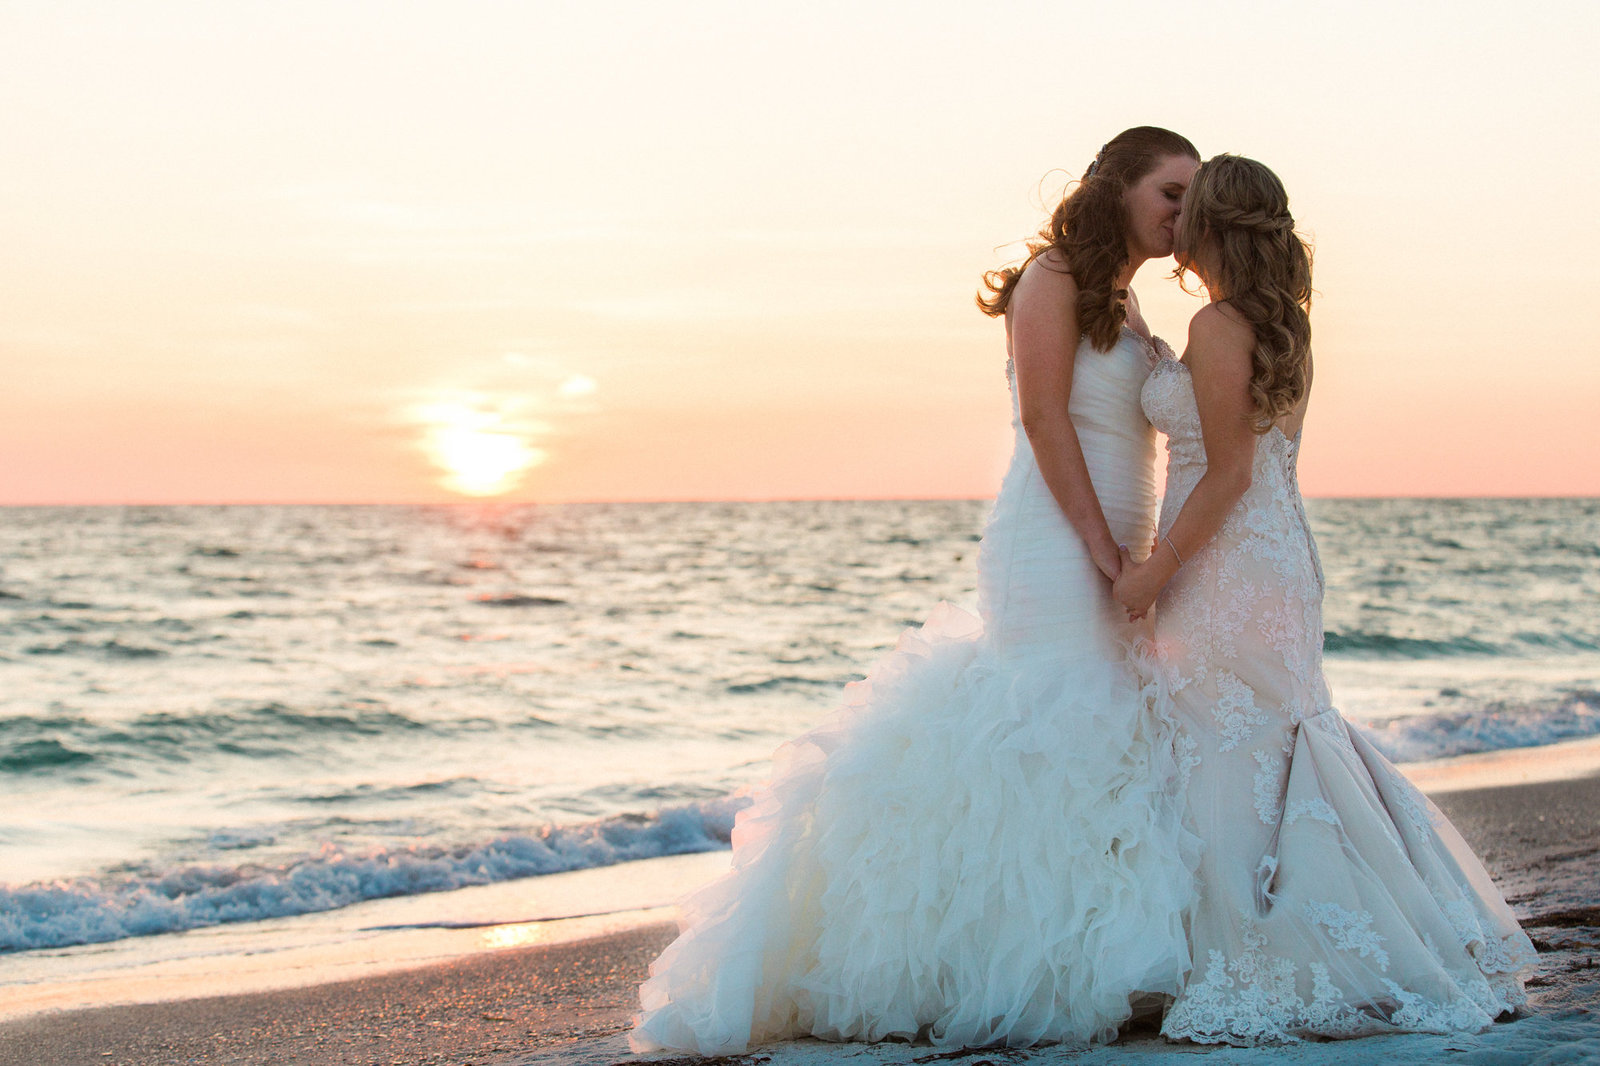 Destination Wedding Photographer Jess Collins Photography at St. Pete's Beach Wedding Venue the Grand Plaza Resort with Same Sex couple for their destination wedding in Florida